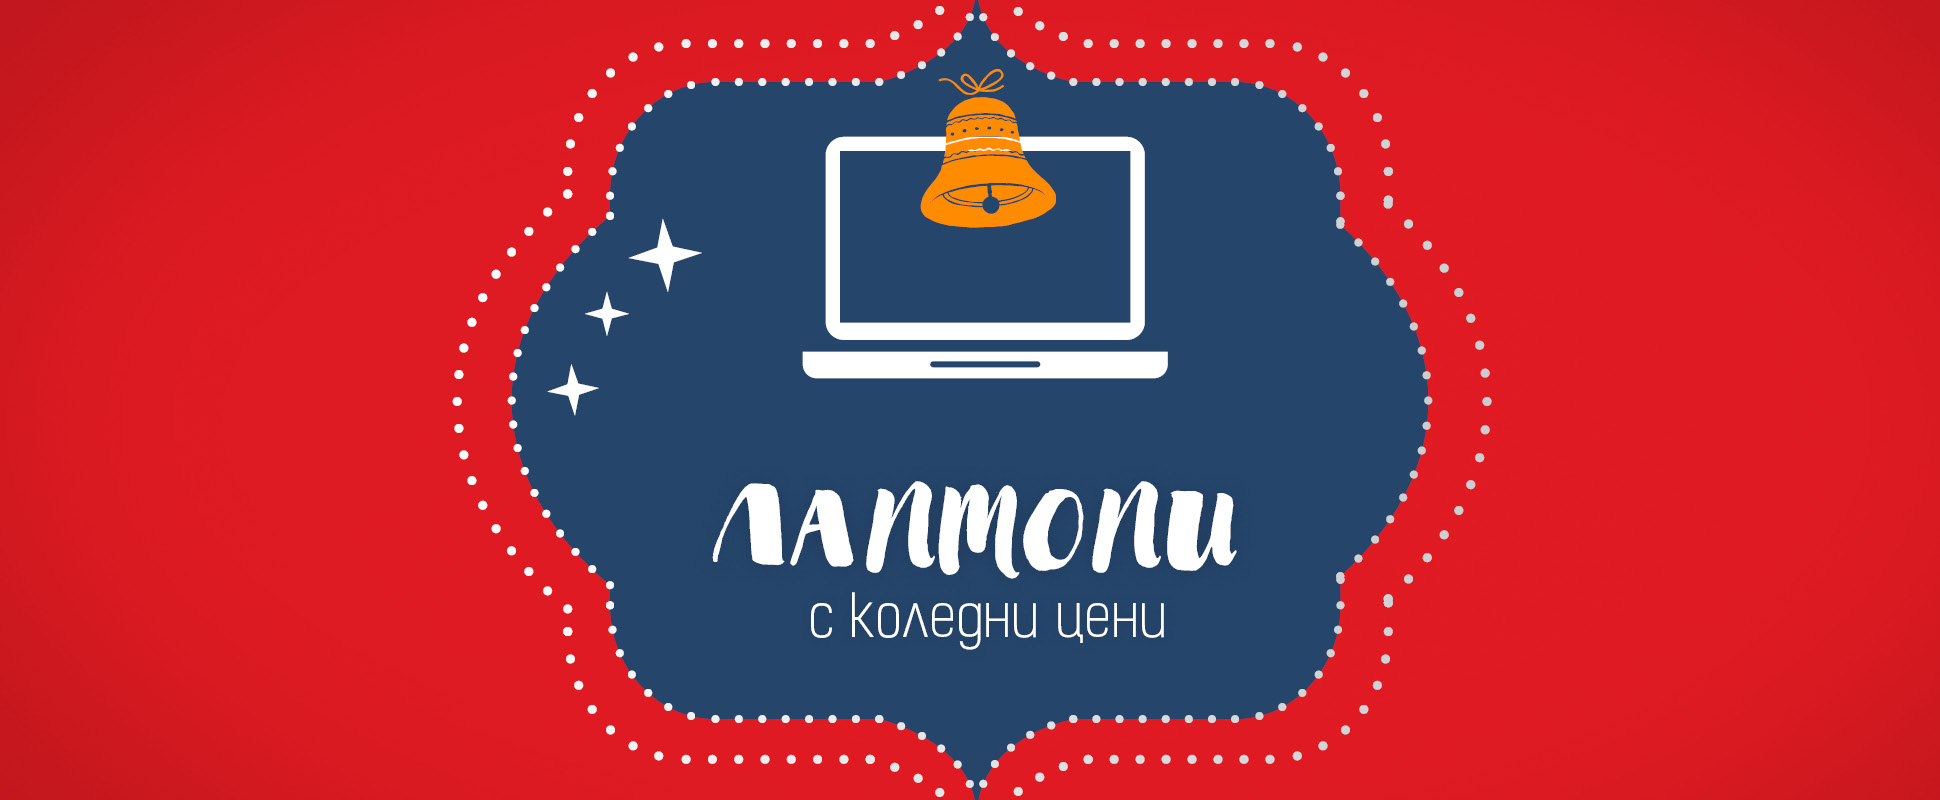 1940x800 pcshop zaglavna xmas cat laptops 12.2018.jpg